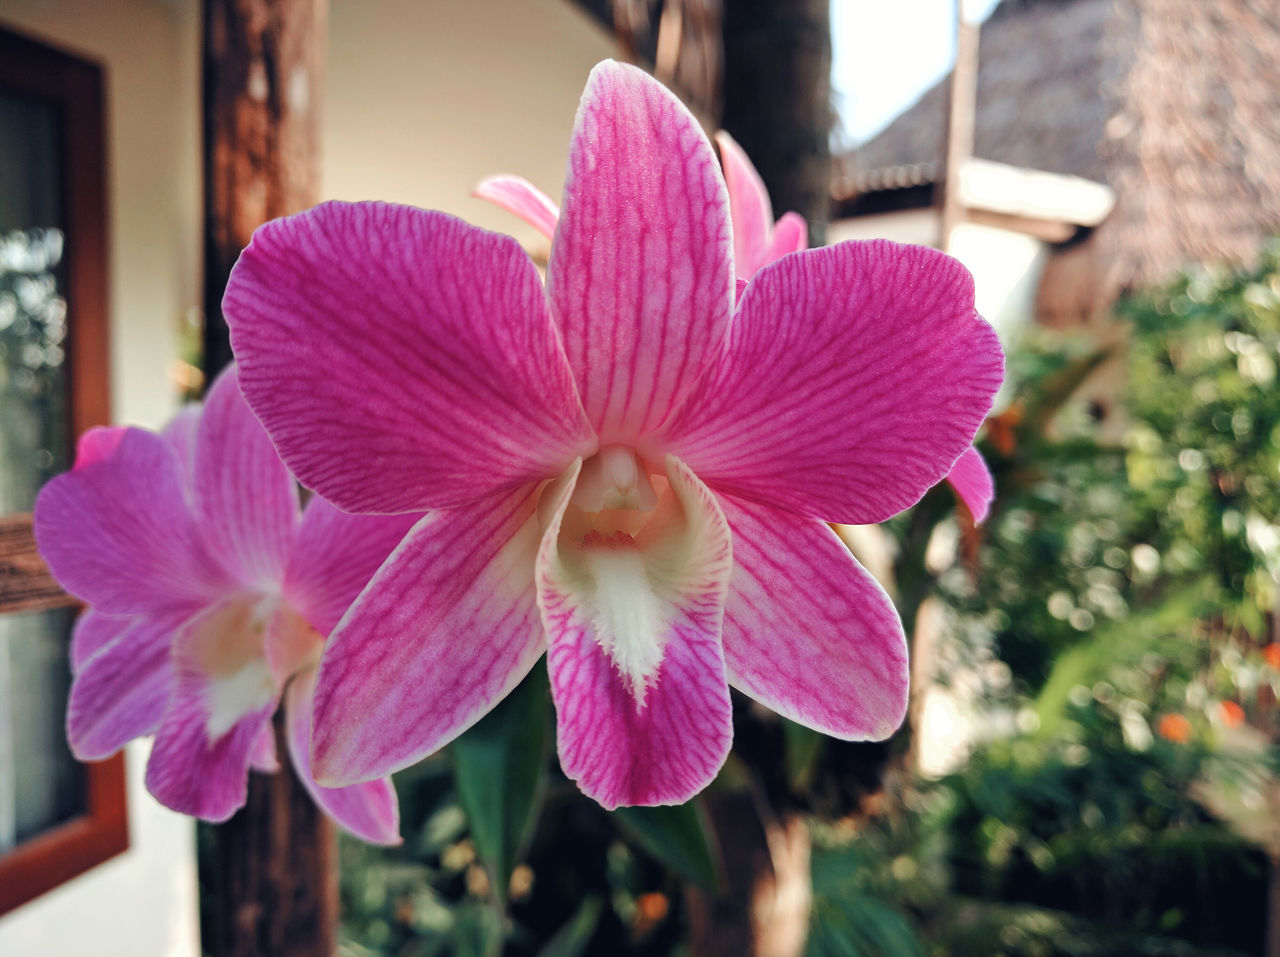 flower, focus on foreground, nature, petal, growth, plant, beauty in nature, close-up, outdoors, day, no people, pink color, blooming, fragility, flower head, architecture, freshness